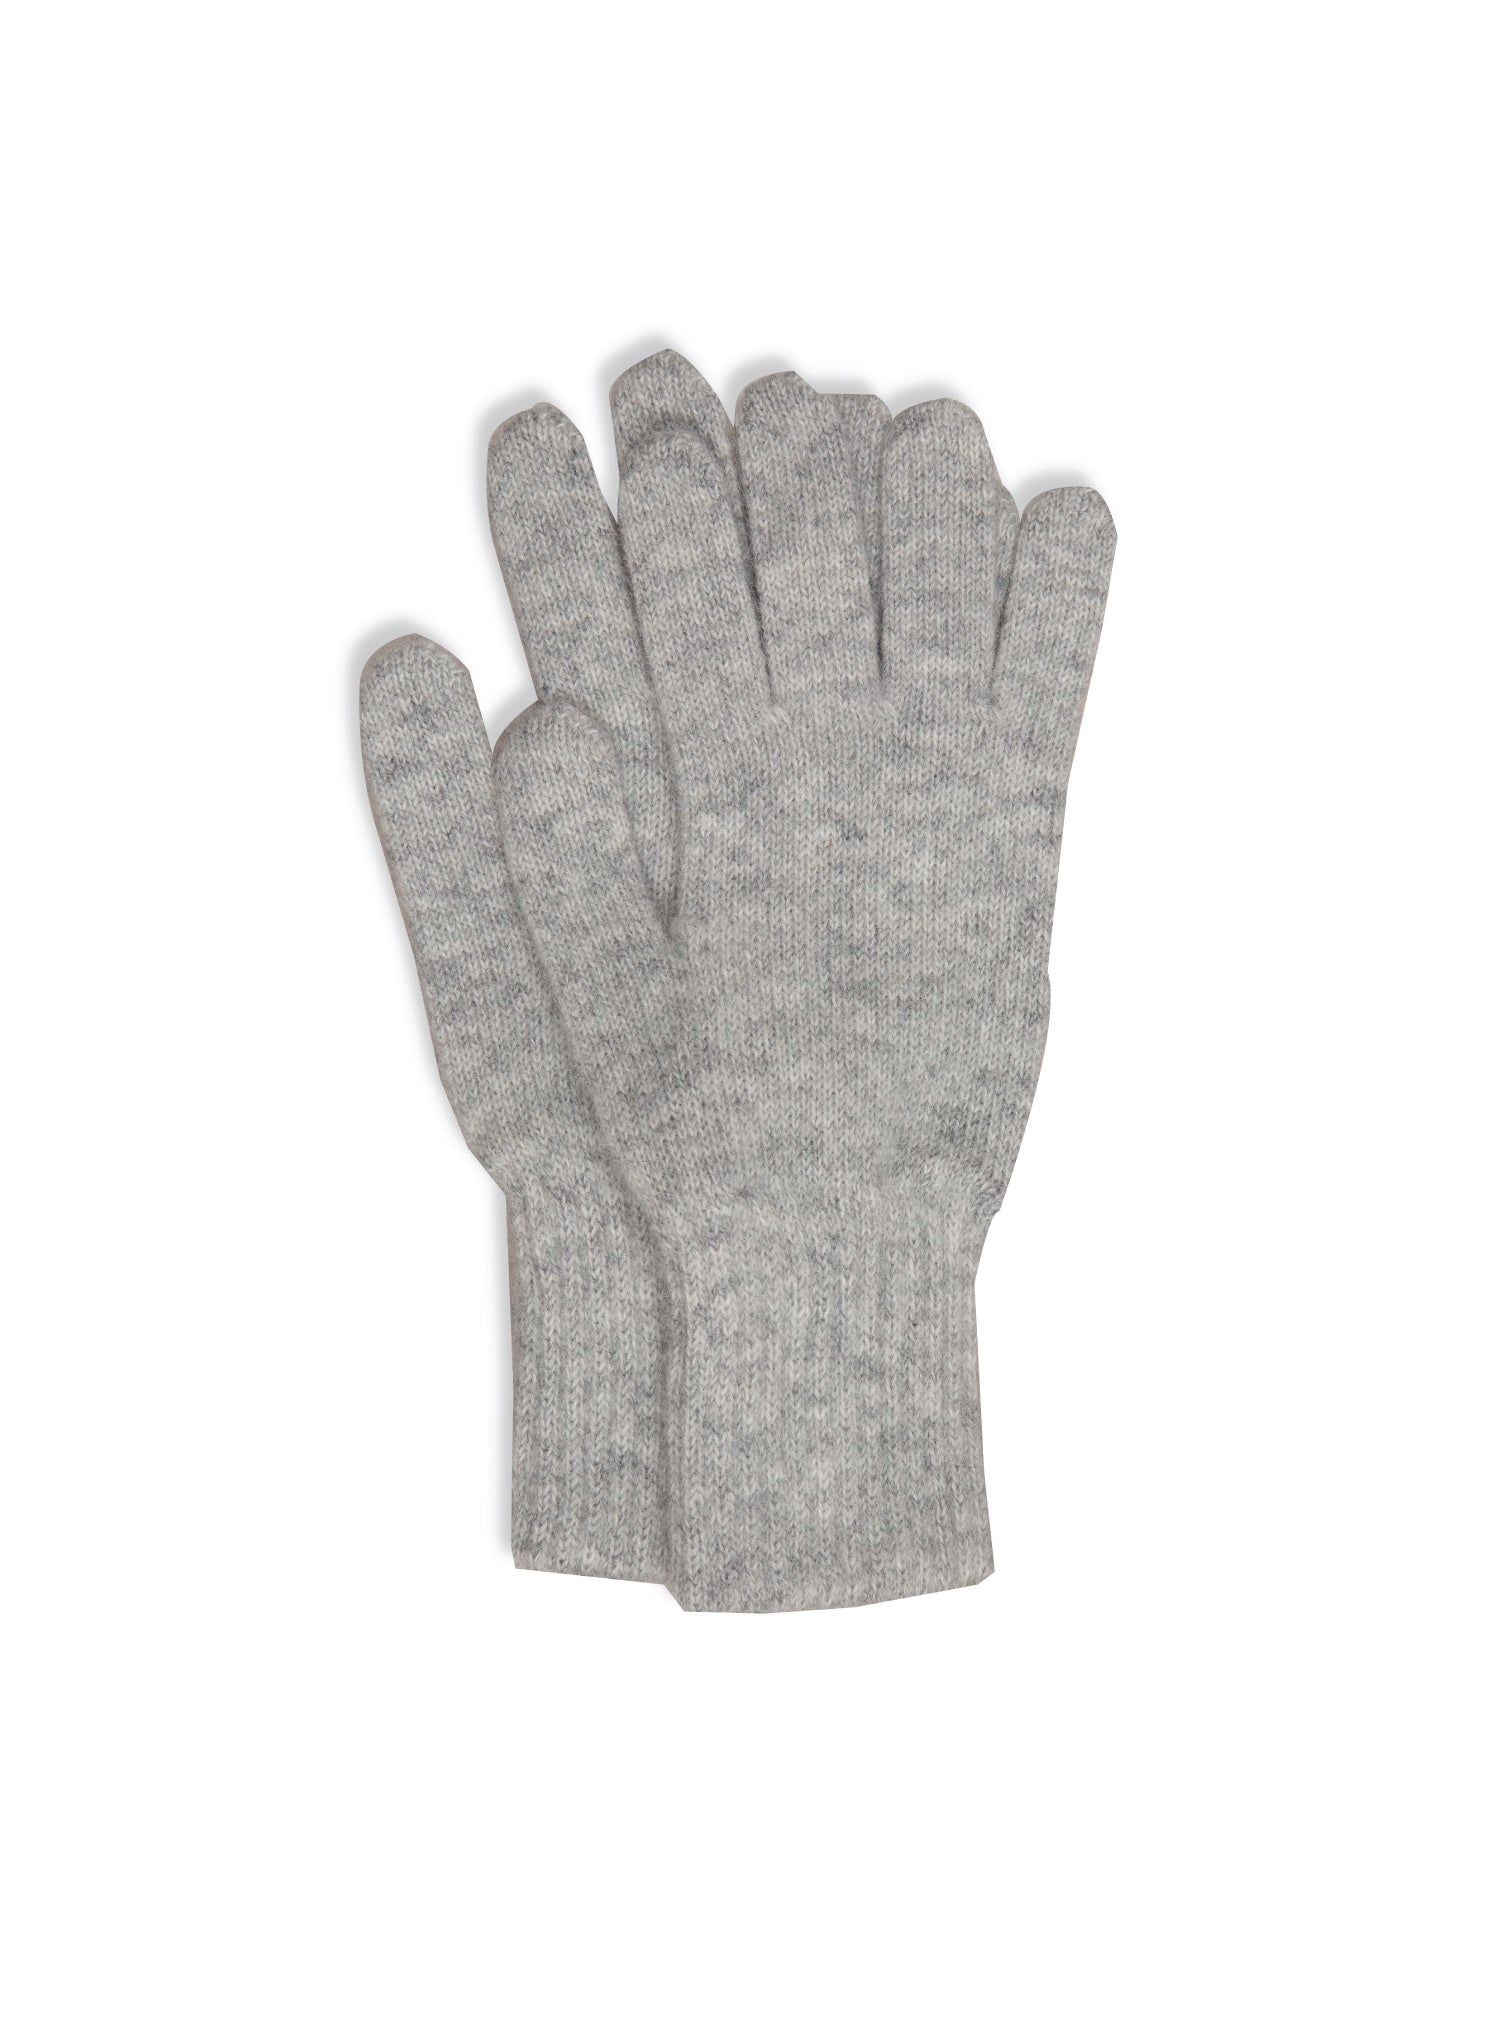 PW Merino Angora gloves - Dove